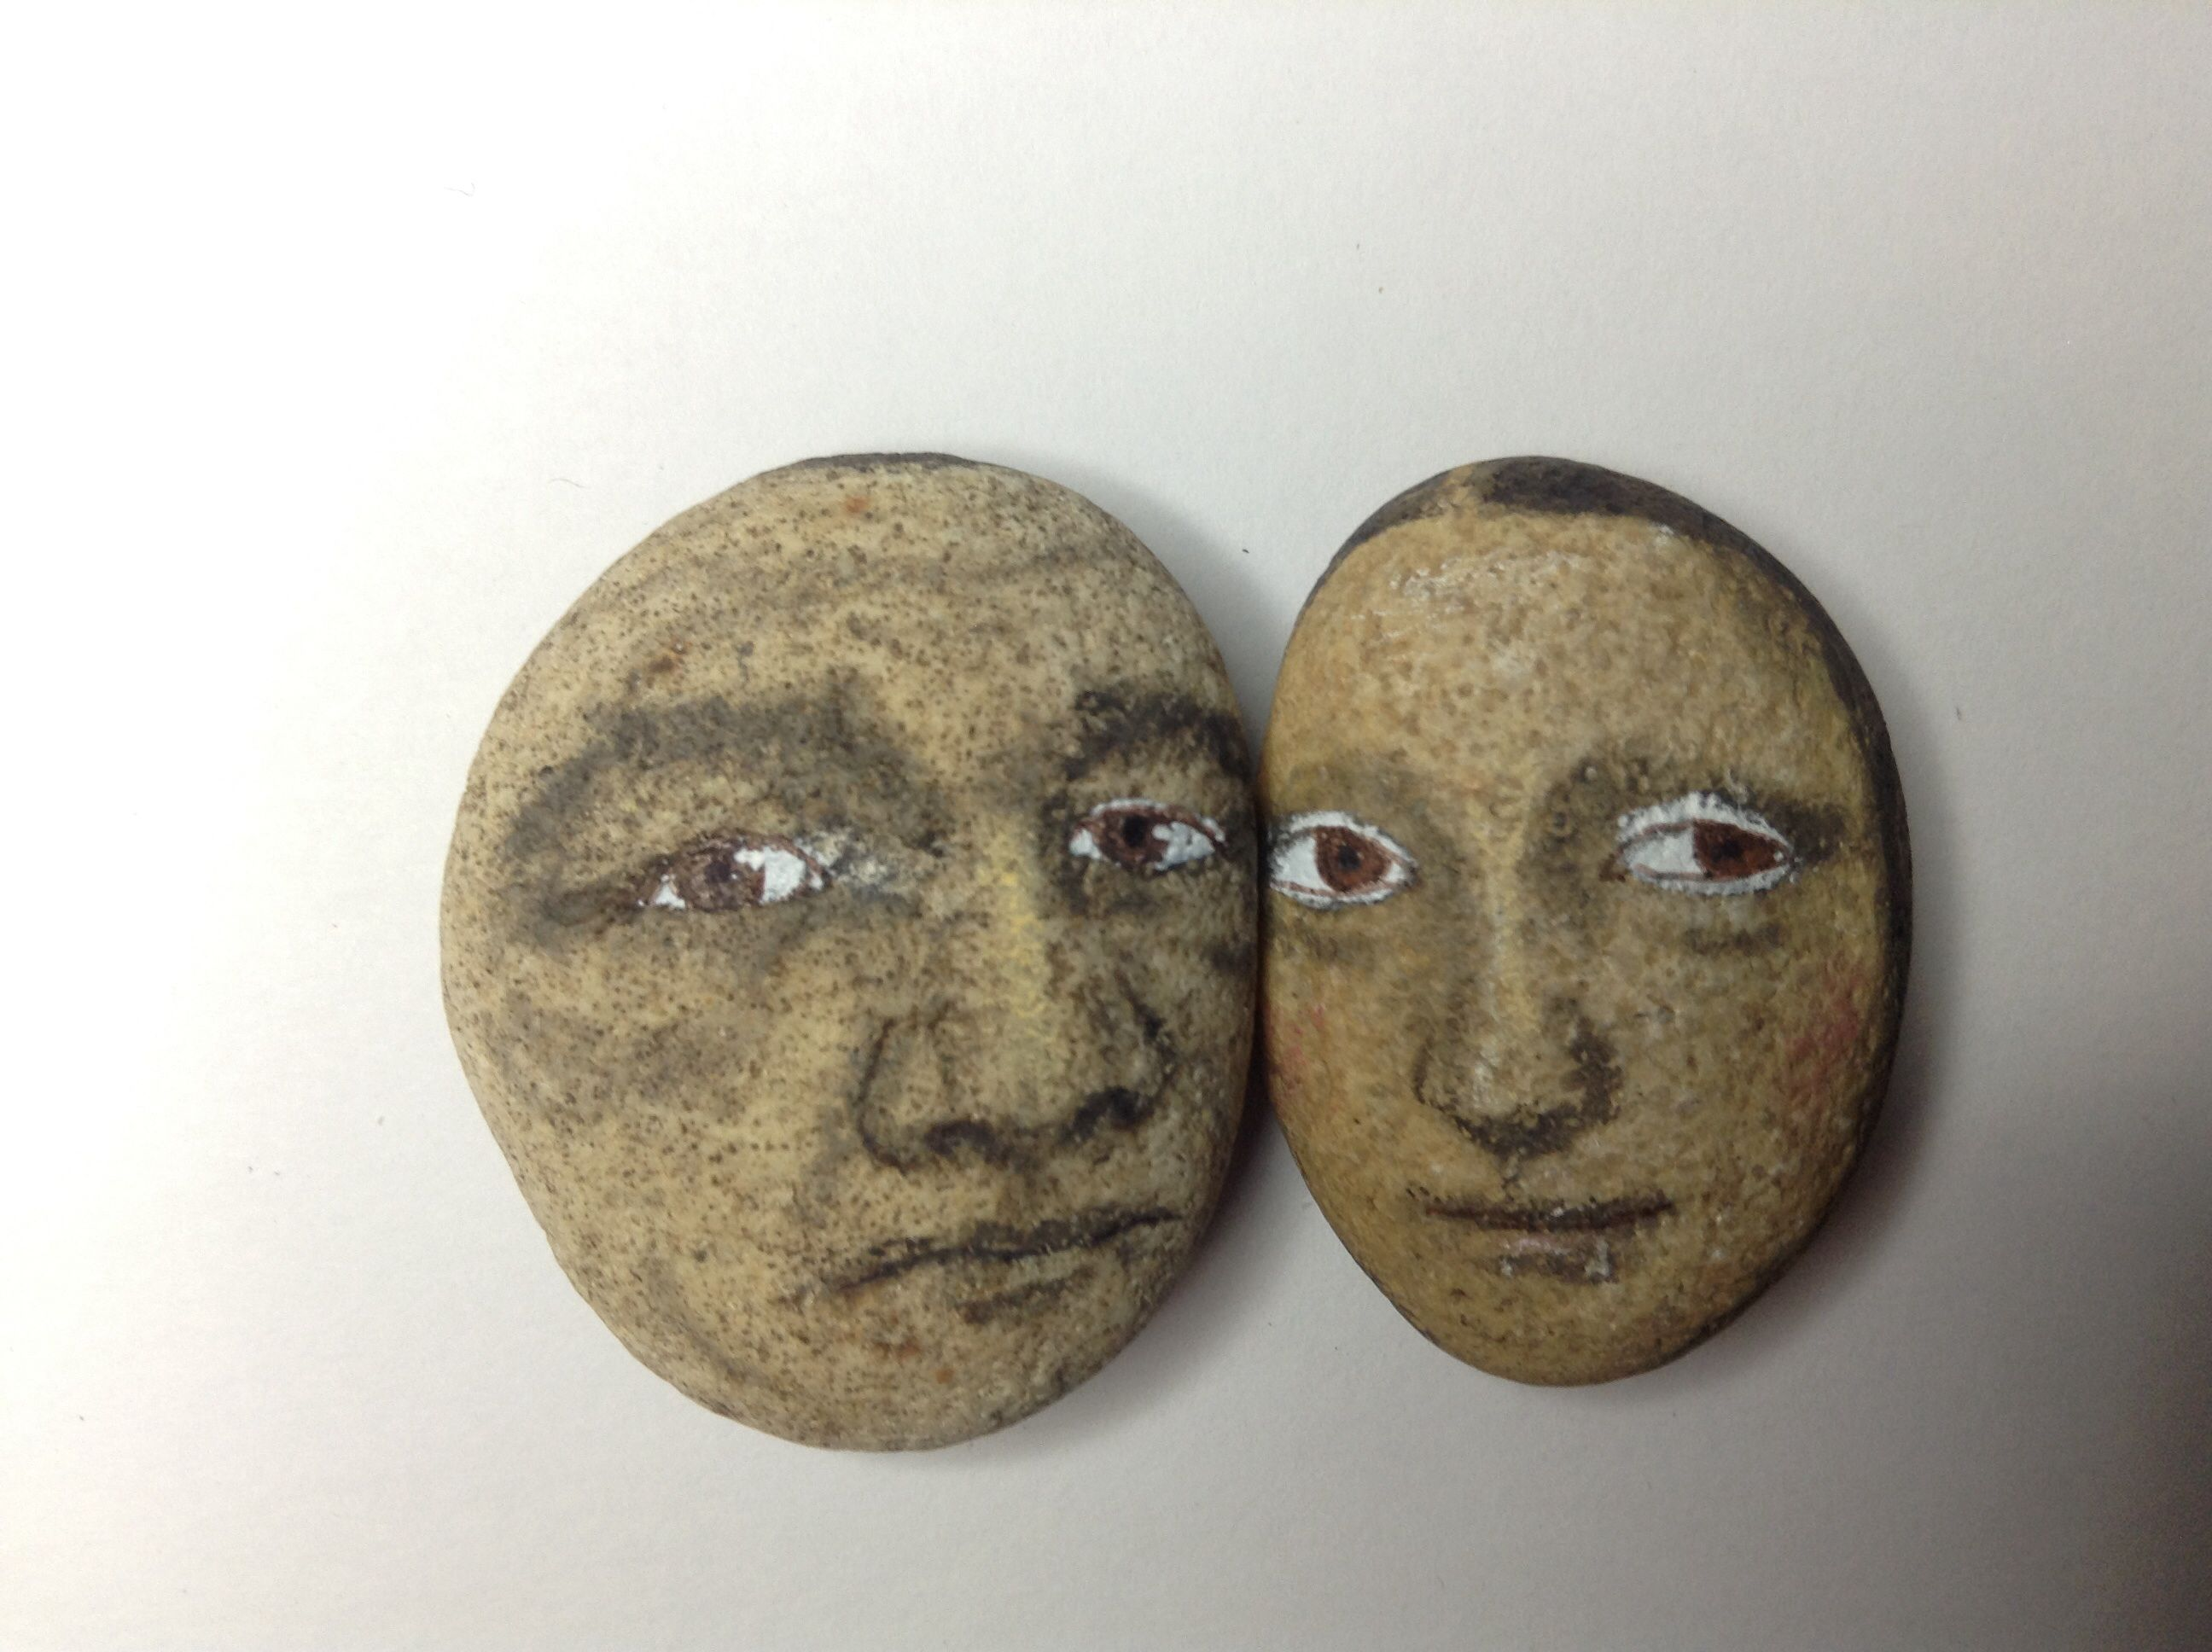 Babe Ruth and Mona Lisa painted river rocks by Artist Kaveman